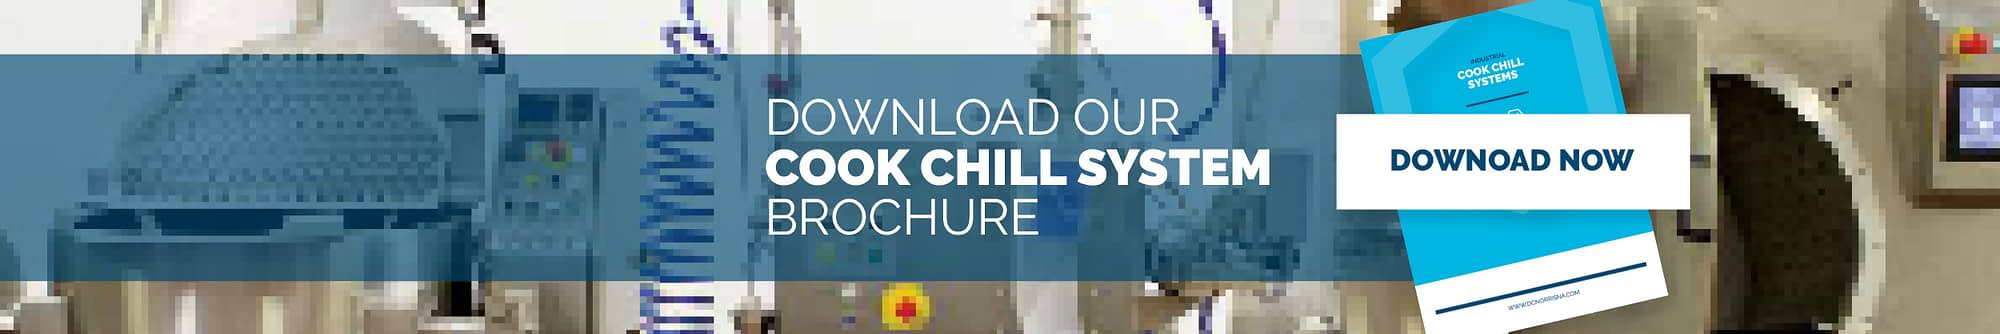 an image of the DC Norris North America industrial cook chill systems brochure